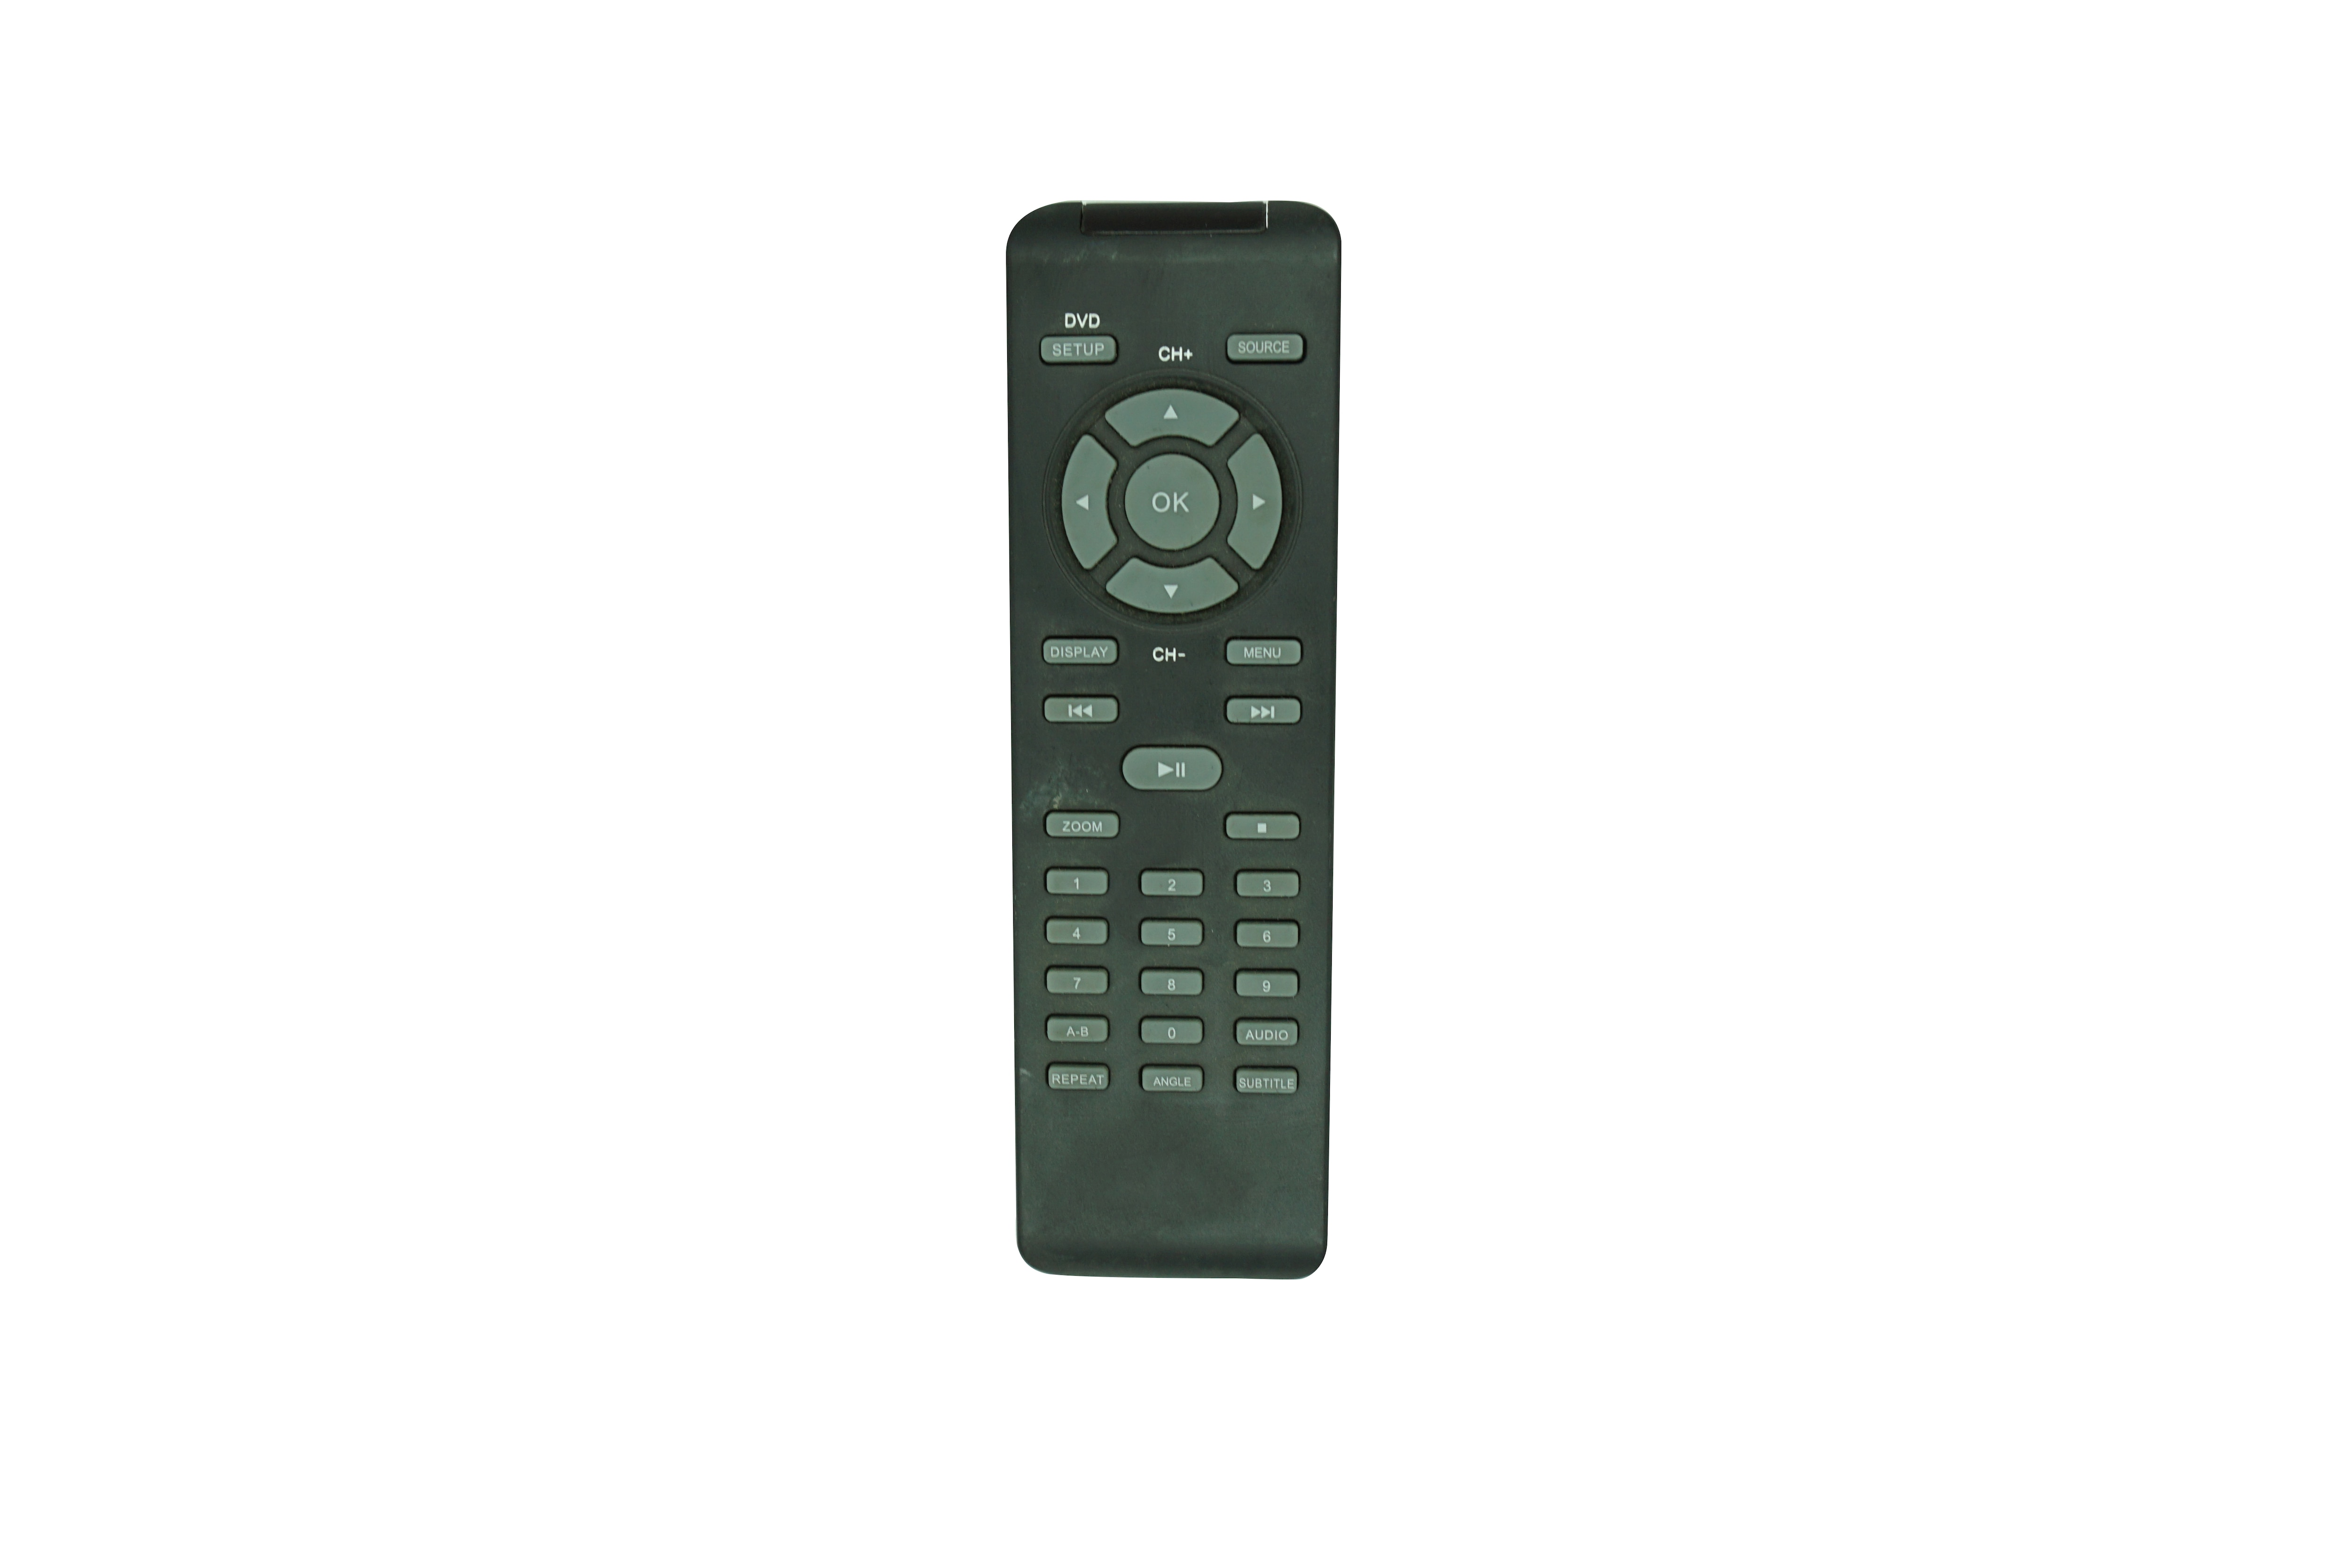 Remote Control For Philips PD7060 PD7060/05 PD7008 PD7008/51 portable dvd player